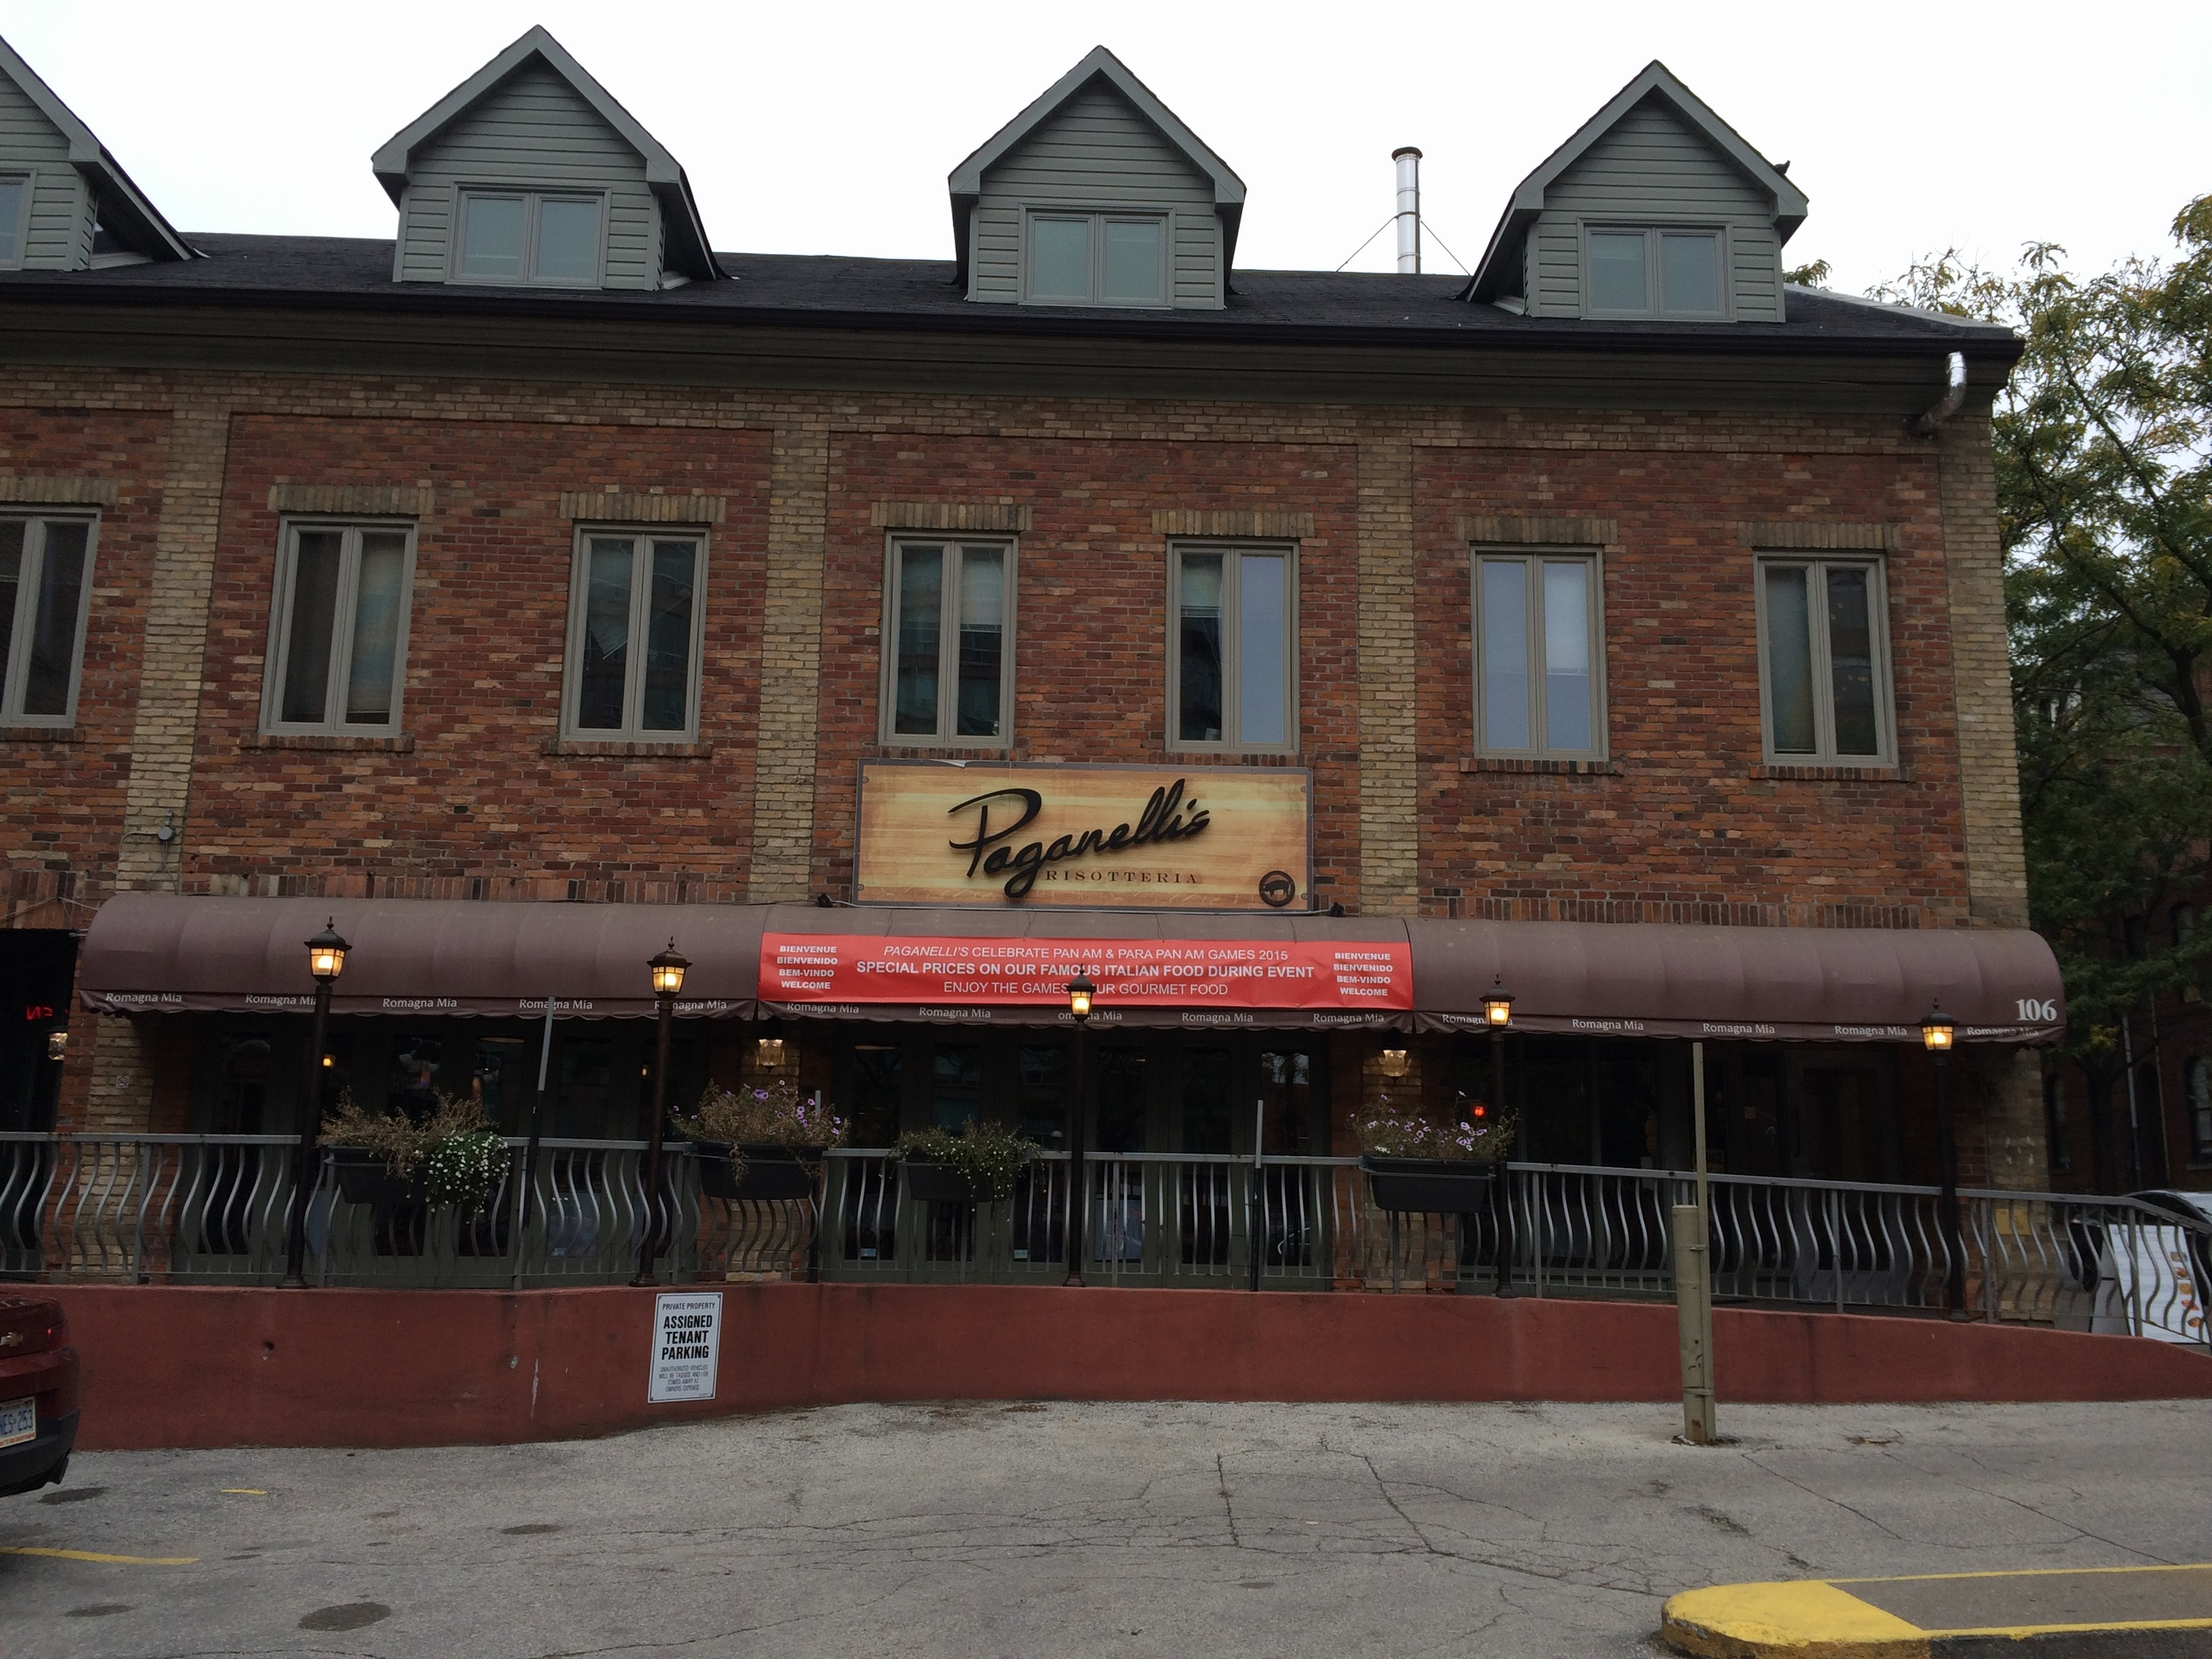 Picture of Paganelli's restaurant from the outside with ramp view.